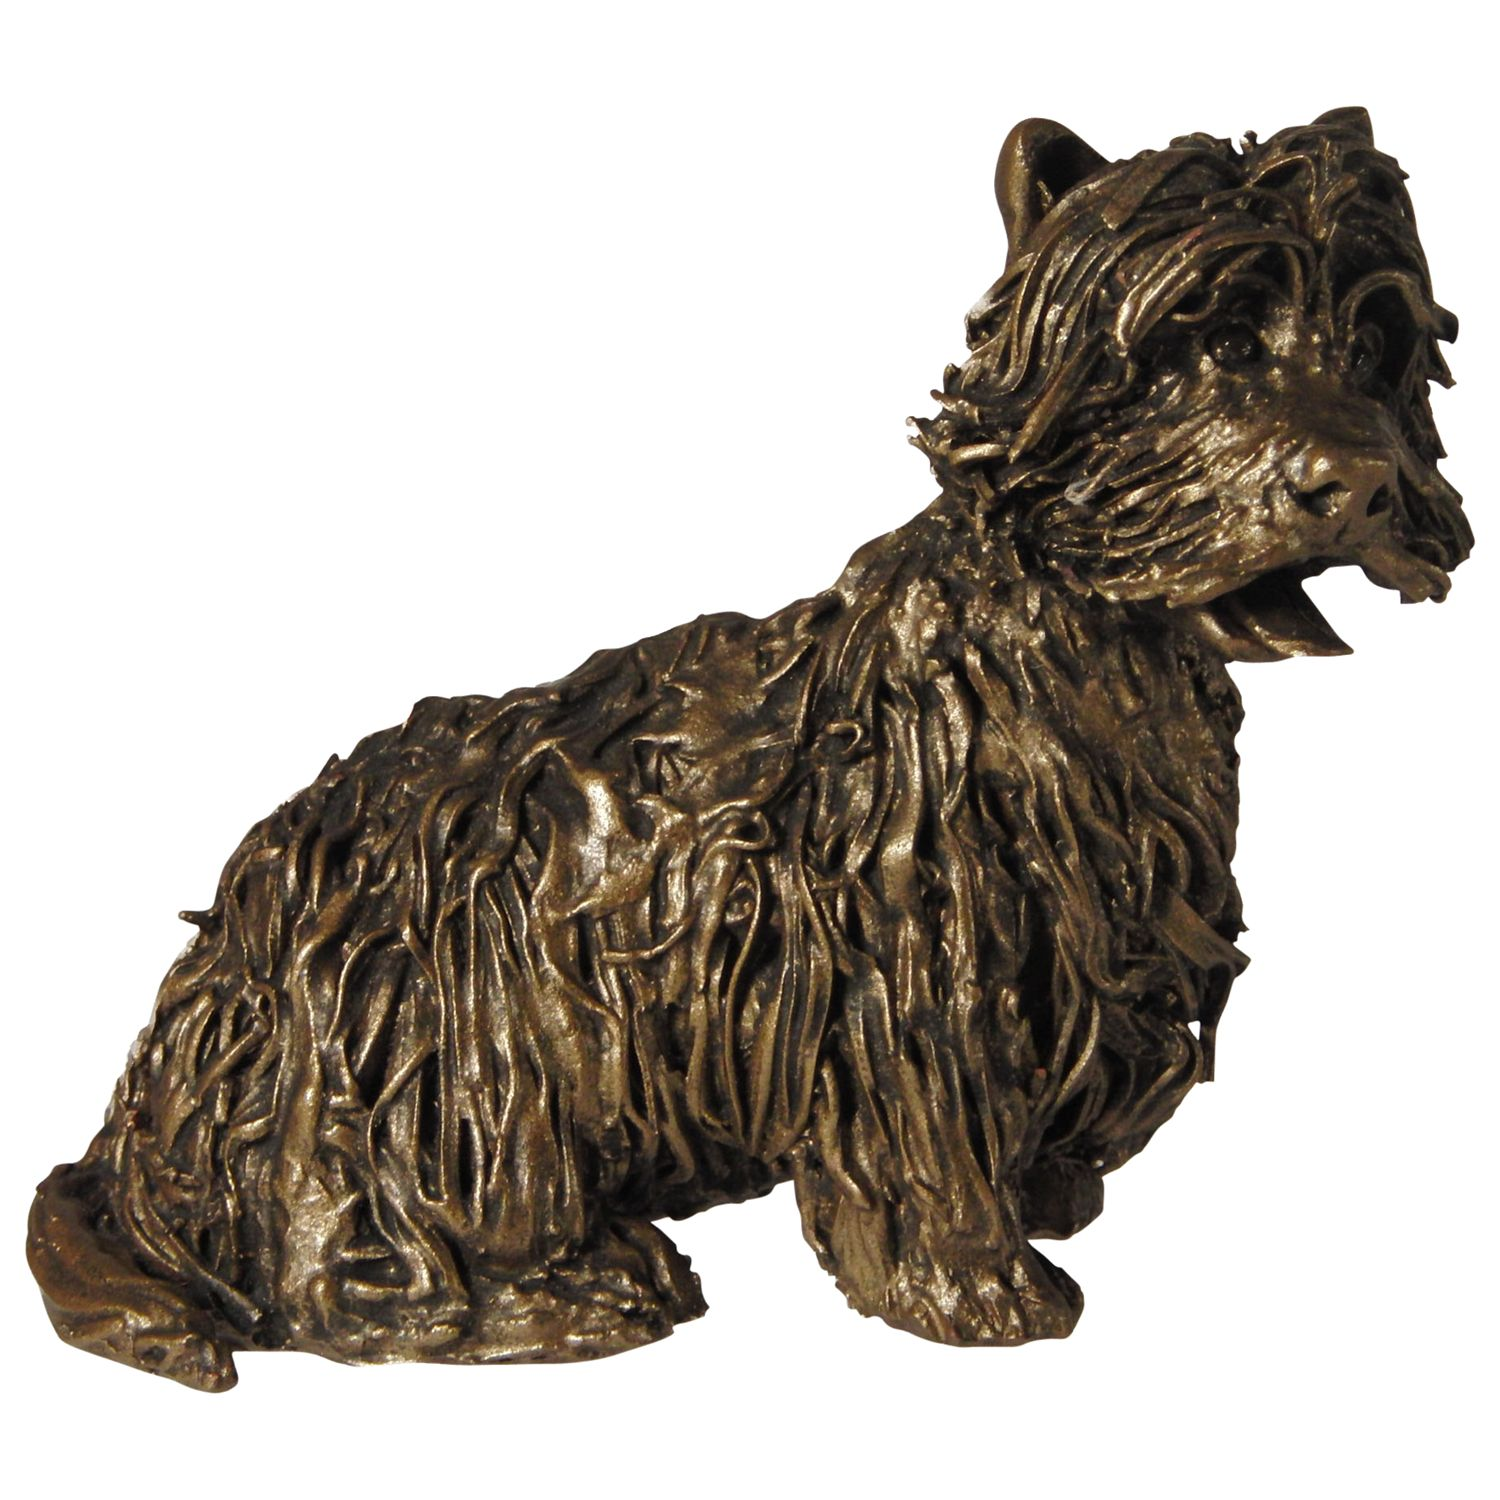 Frith Sculpture Westie, by Veronica Ballan